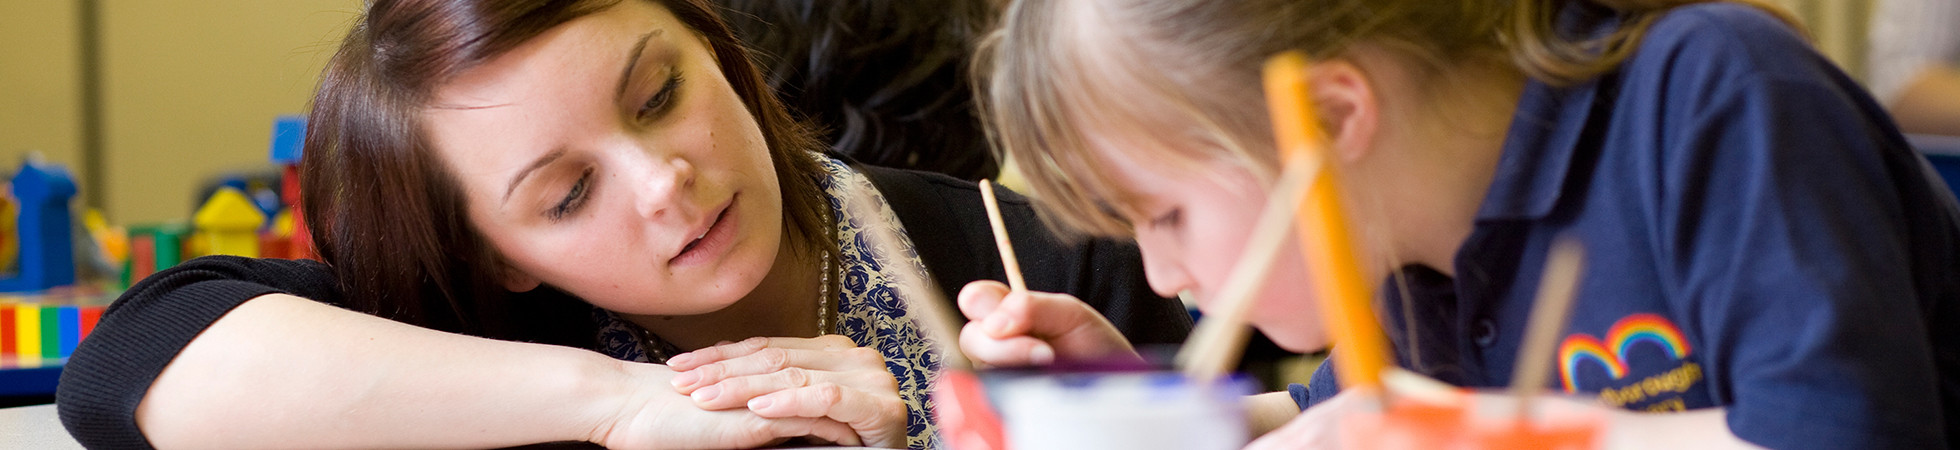 qcf diploma for childrens care learning Four mandatory units from the svq children's care learning and  level 3  diploma in children's care learning and development plus the sqa unit  dt4m04.